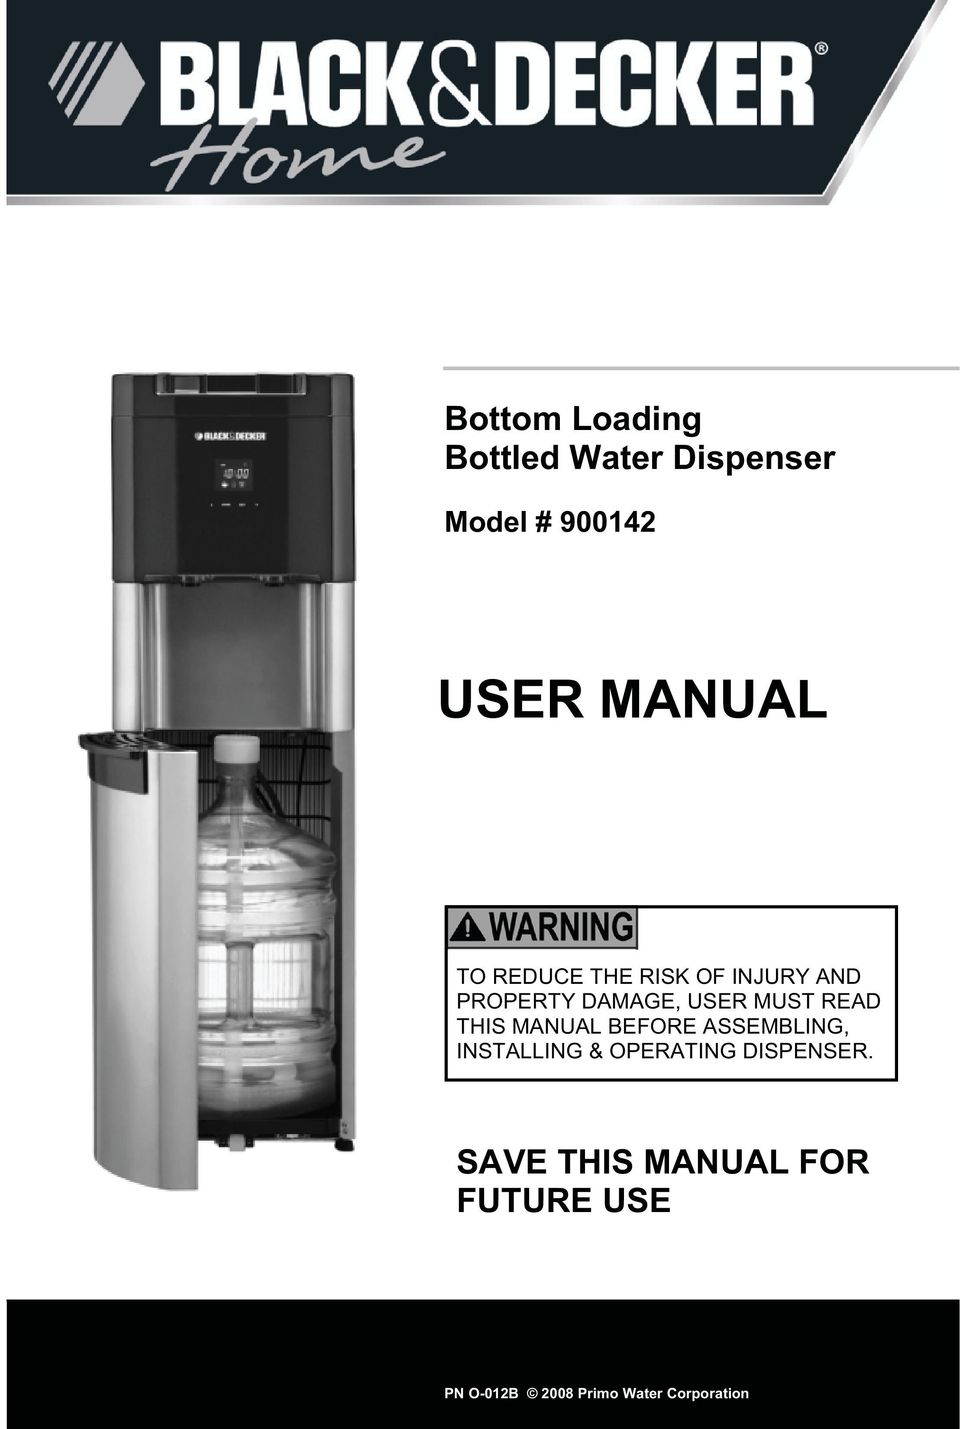 USER MUST READ THIS MANUAL BEFORE ASSEMBLING, INSTALLING & OPERATING